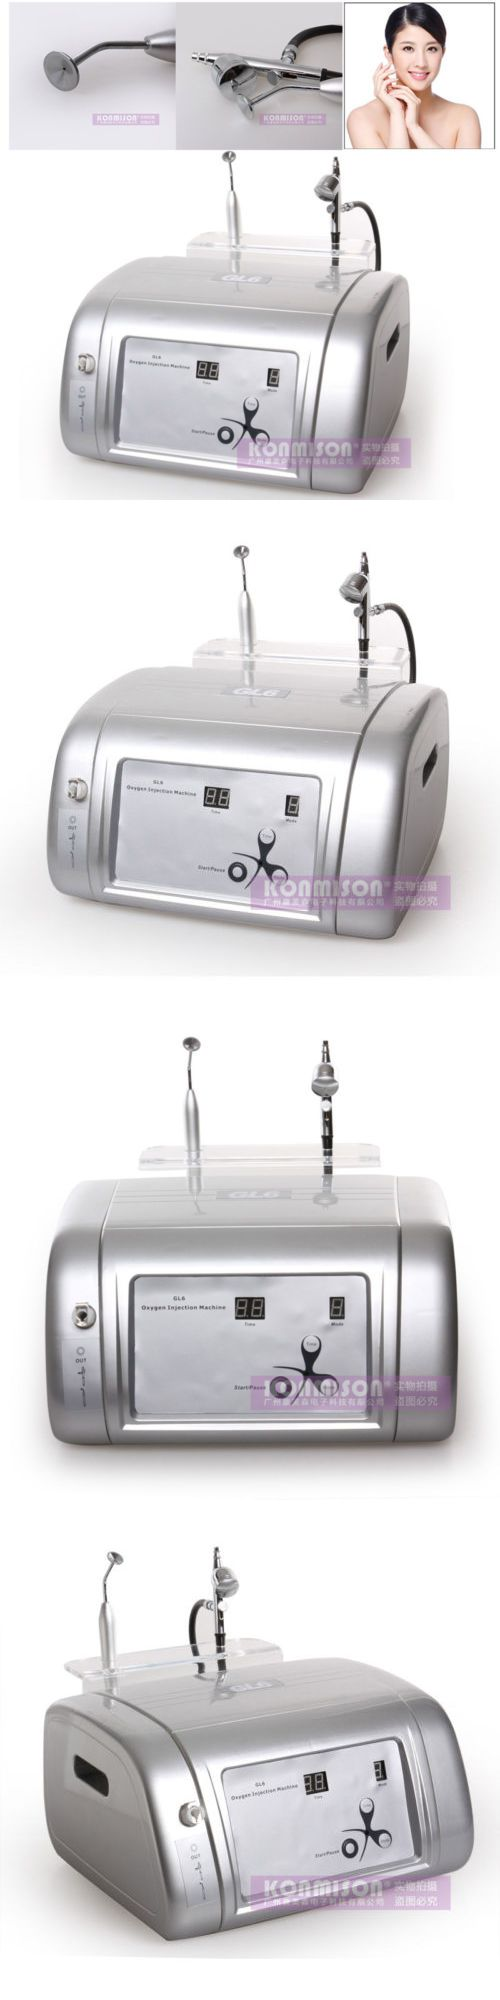 Professional Facial Machines: O2 Oxygen Injection Spray Water Jet Peel Skin Care Wrinkle Removal Machine Wb -> BUY IT NOW ONLY: $209 on eBay!